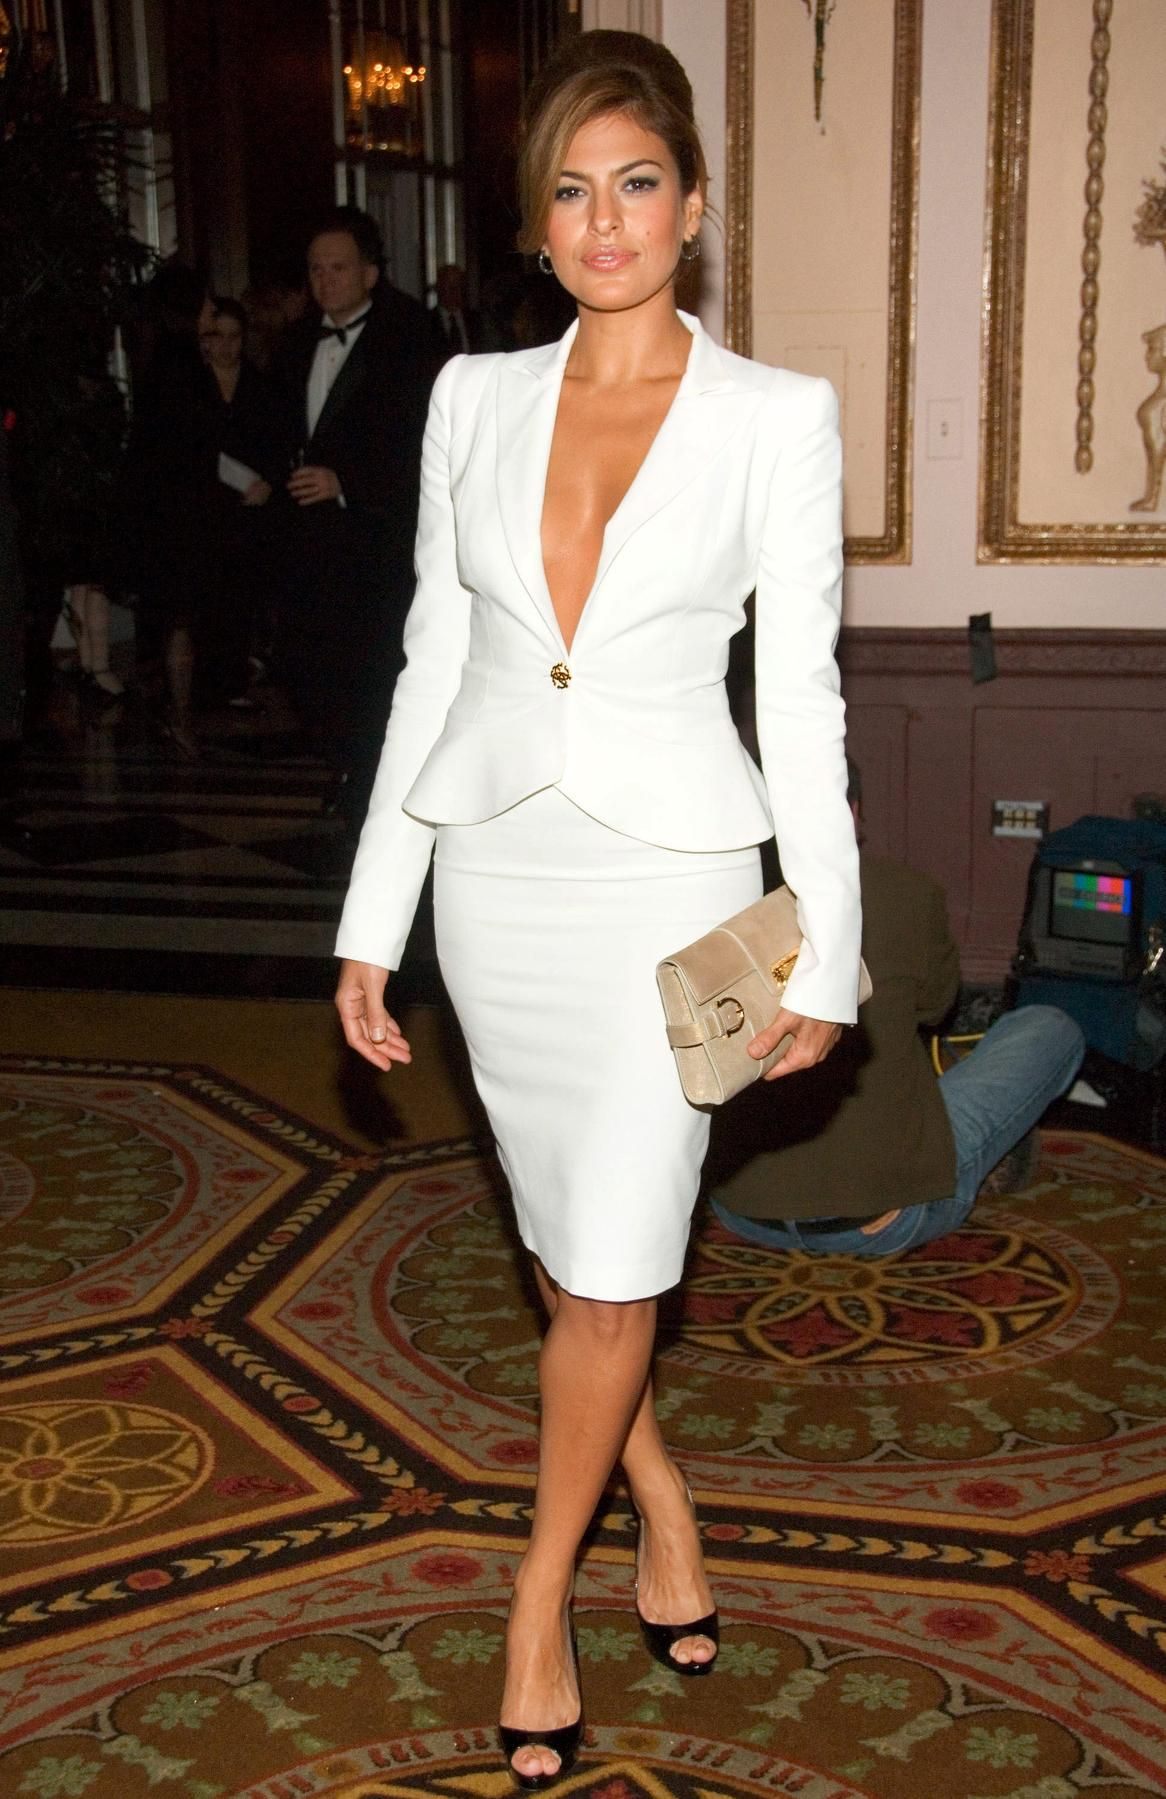 Eva Mendes In A Gorgeous White Suit